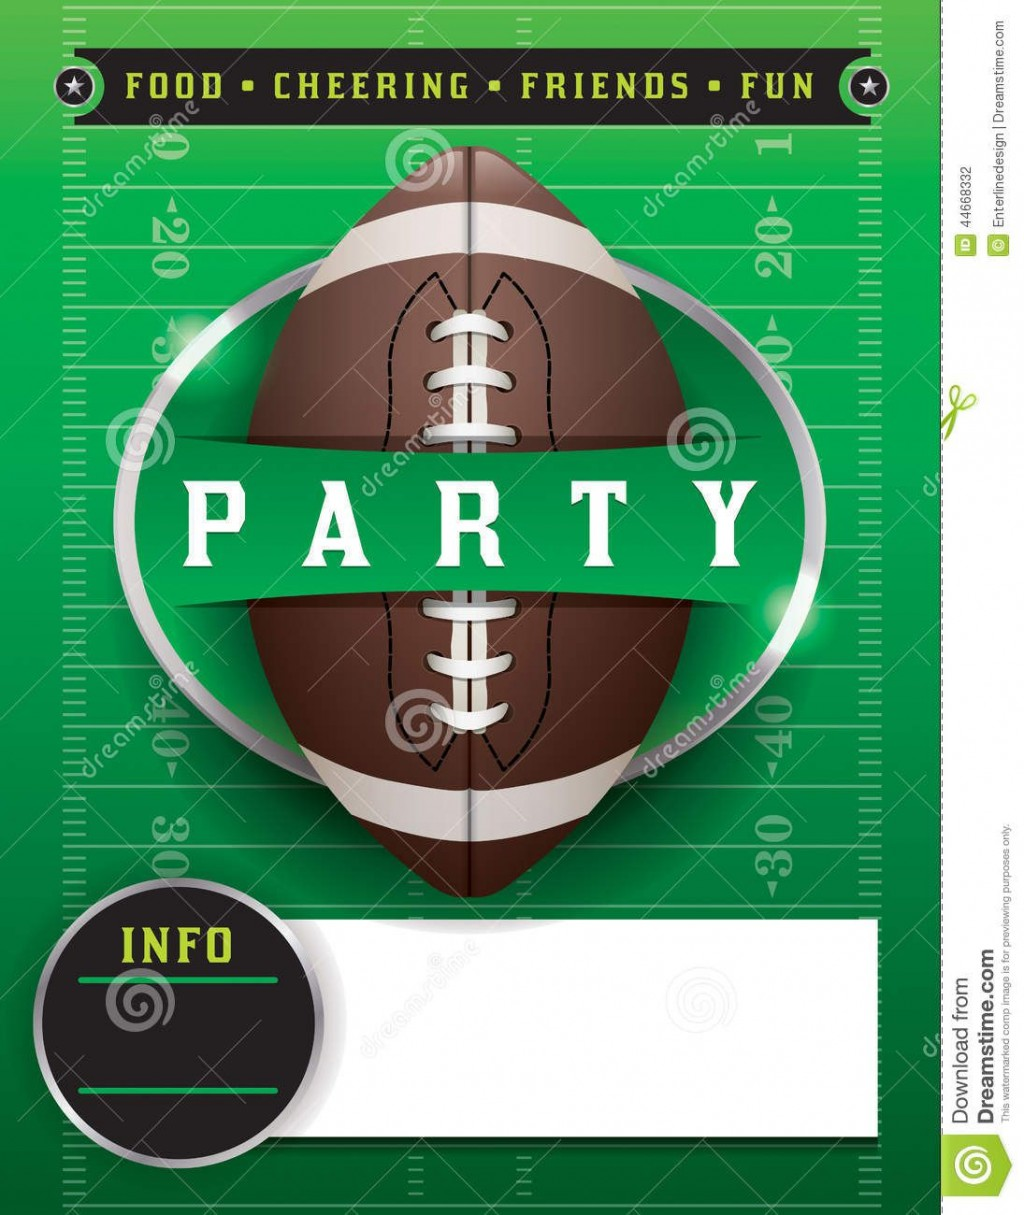 004 Phenomenal Free Tailgate Party Flyer Template Download Highest Quality Large